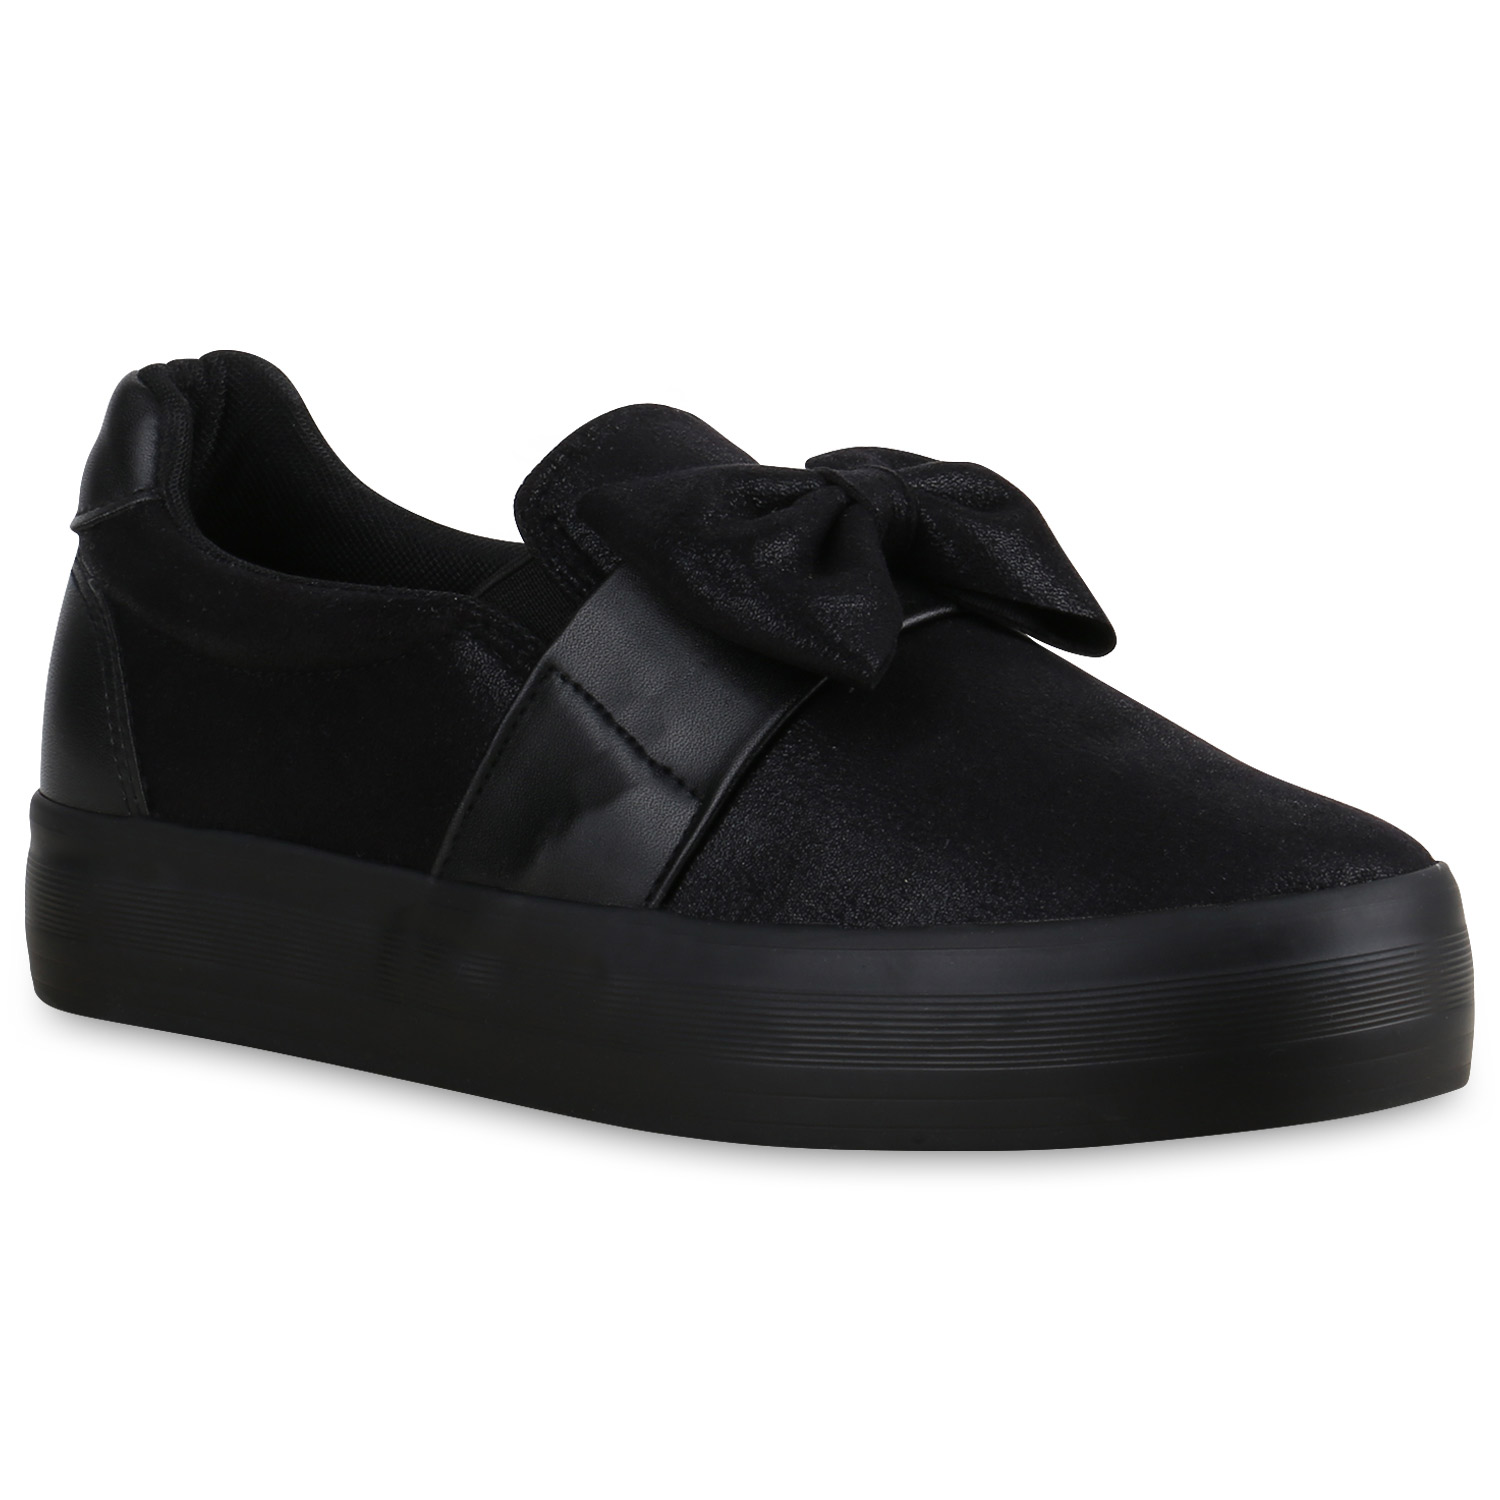 damen plateau sneaker slip ons glitzer schleifen sneakers schuhe 815540 ebay. Black Bedroom Furniture Sets. Home Design Ideas